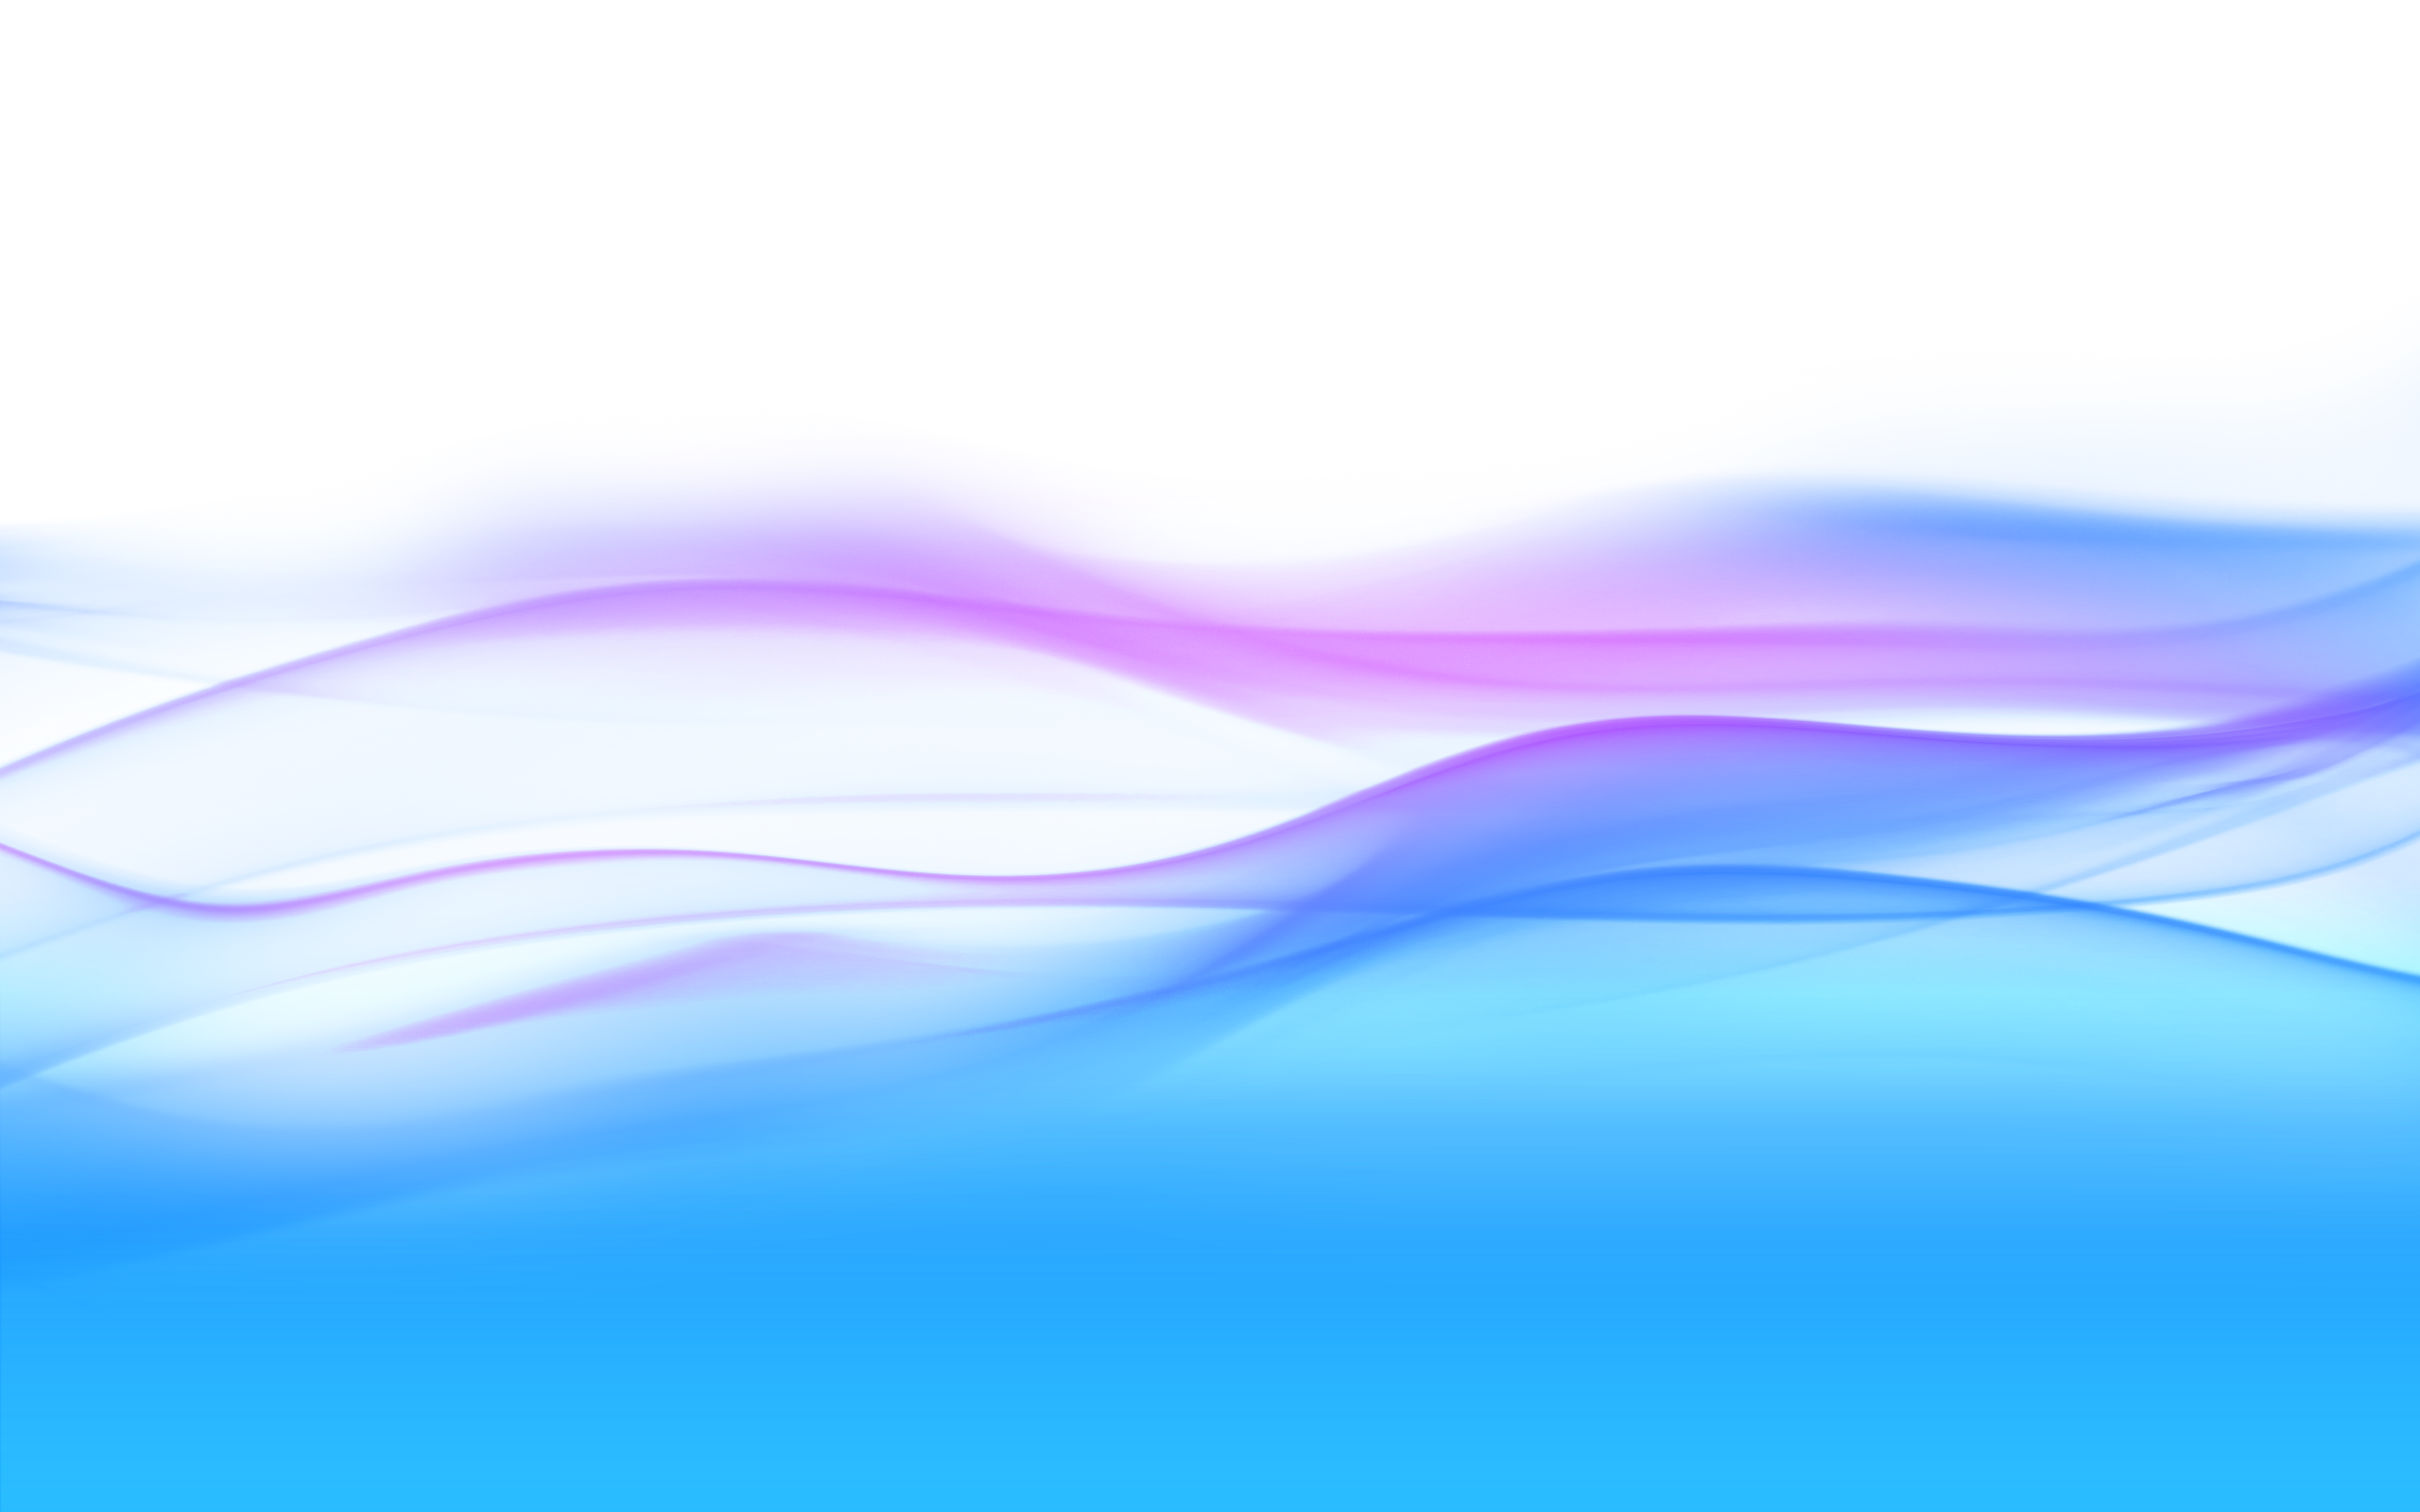 Download in Original Resolution - Waves PNG HD